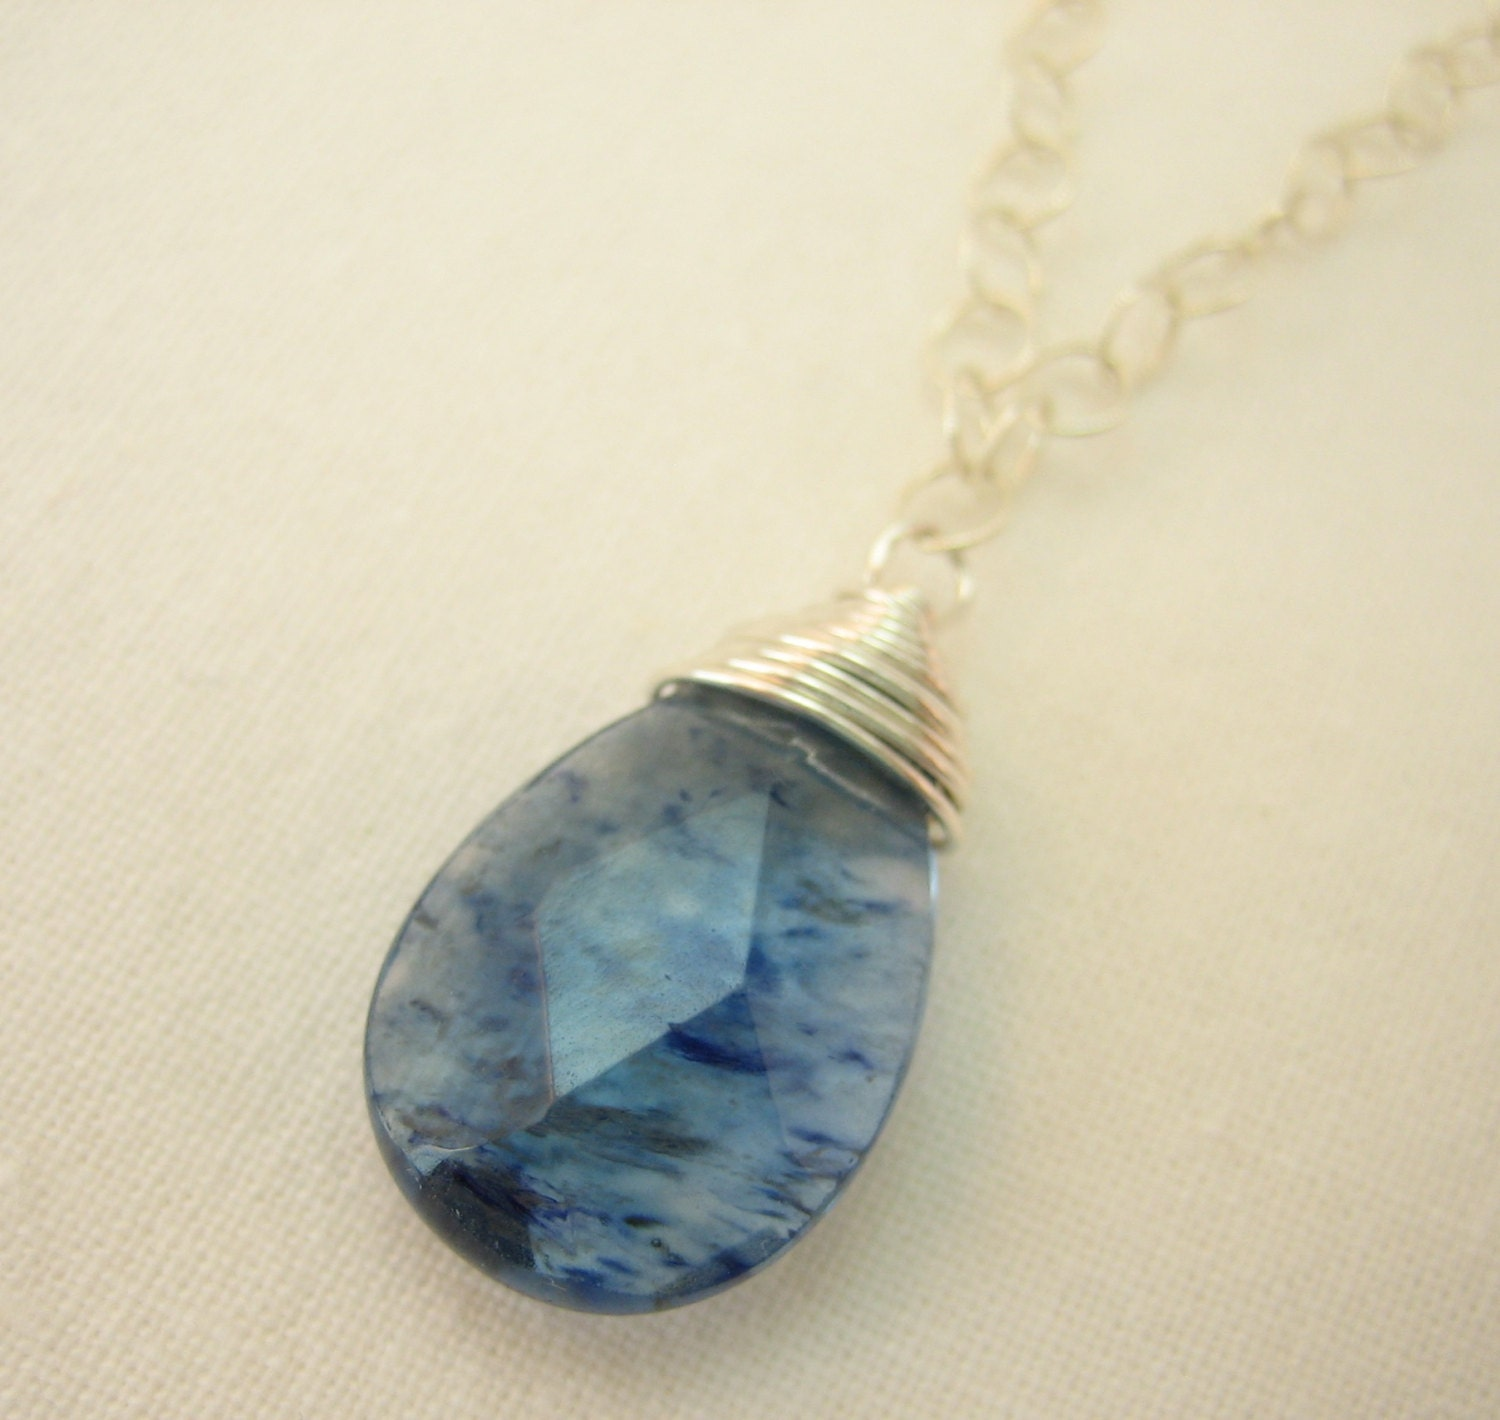 Simple Sterling Silver Necklace with Wire Wrapped Blue Quartz Gemstone Pendant -gift for her